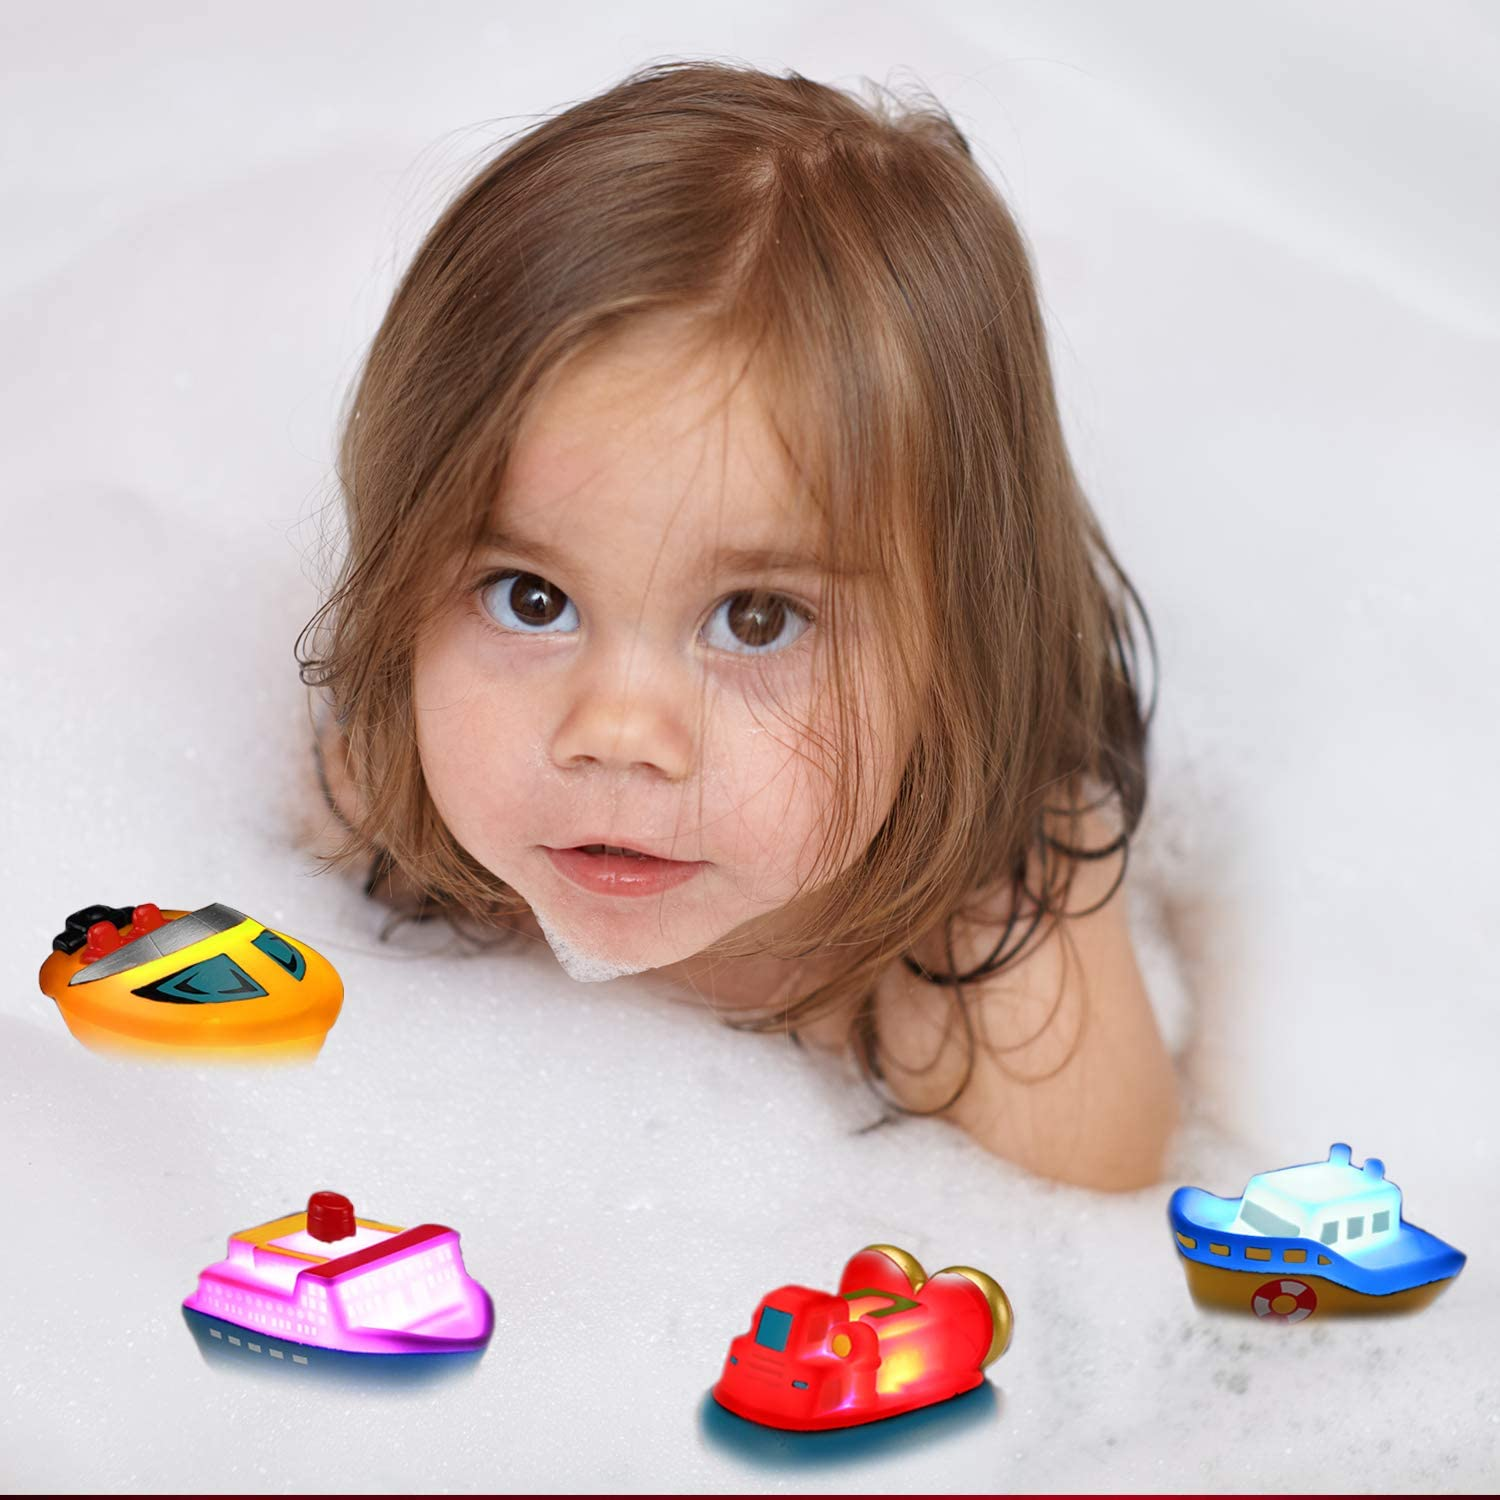 Bath Toys Flashing Color Changing Light in Water Tub Gift for Baby Infant Toddler Child Kid 6 Packs Light up Boat Floating Rubber Set Bathtub Ship Toy for Bathroom Shower Game Swimming Pool Party